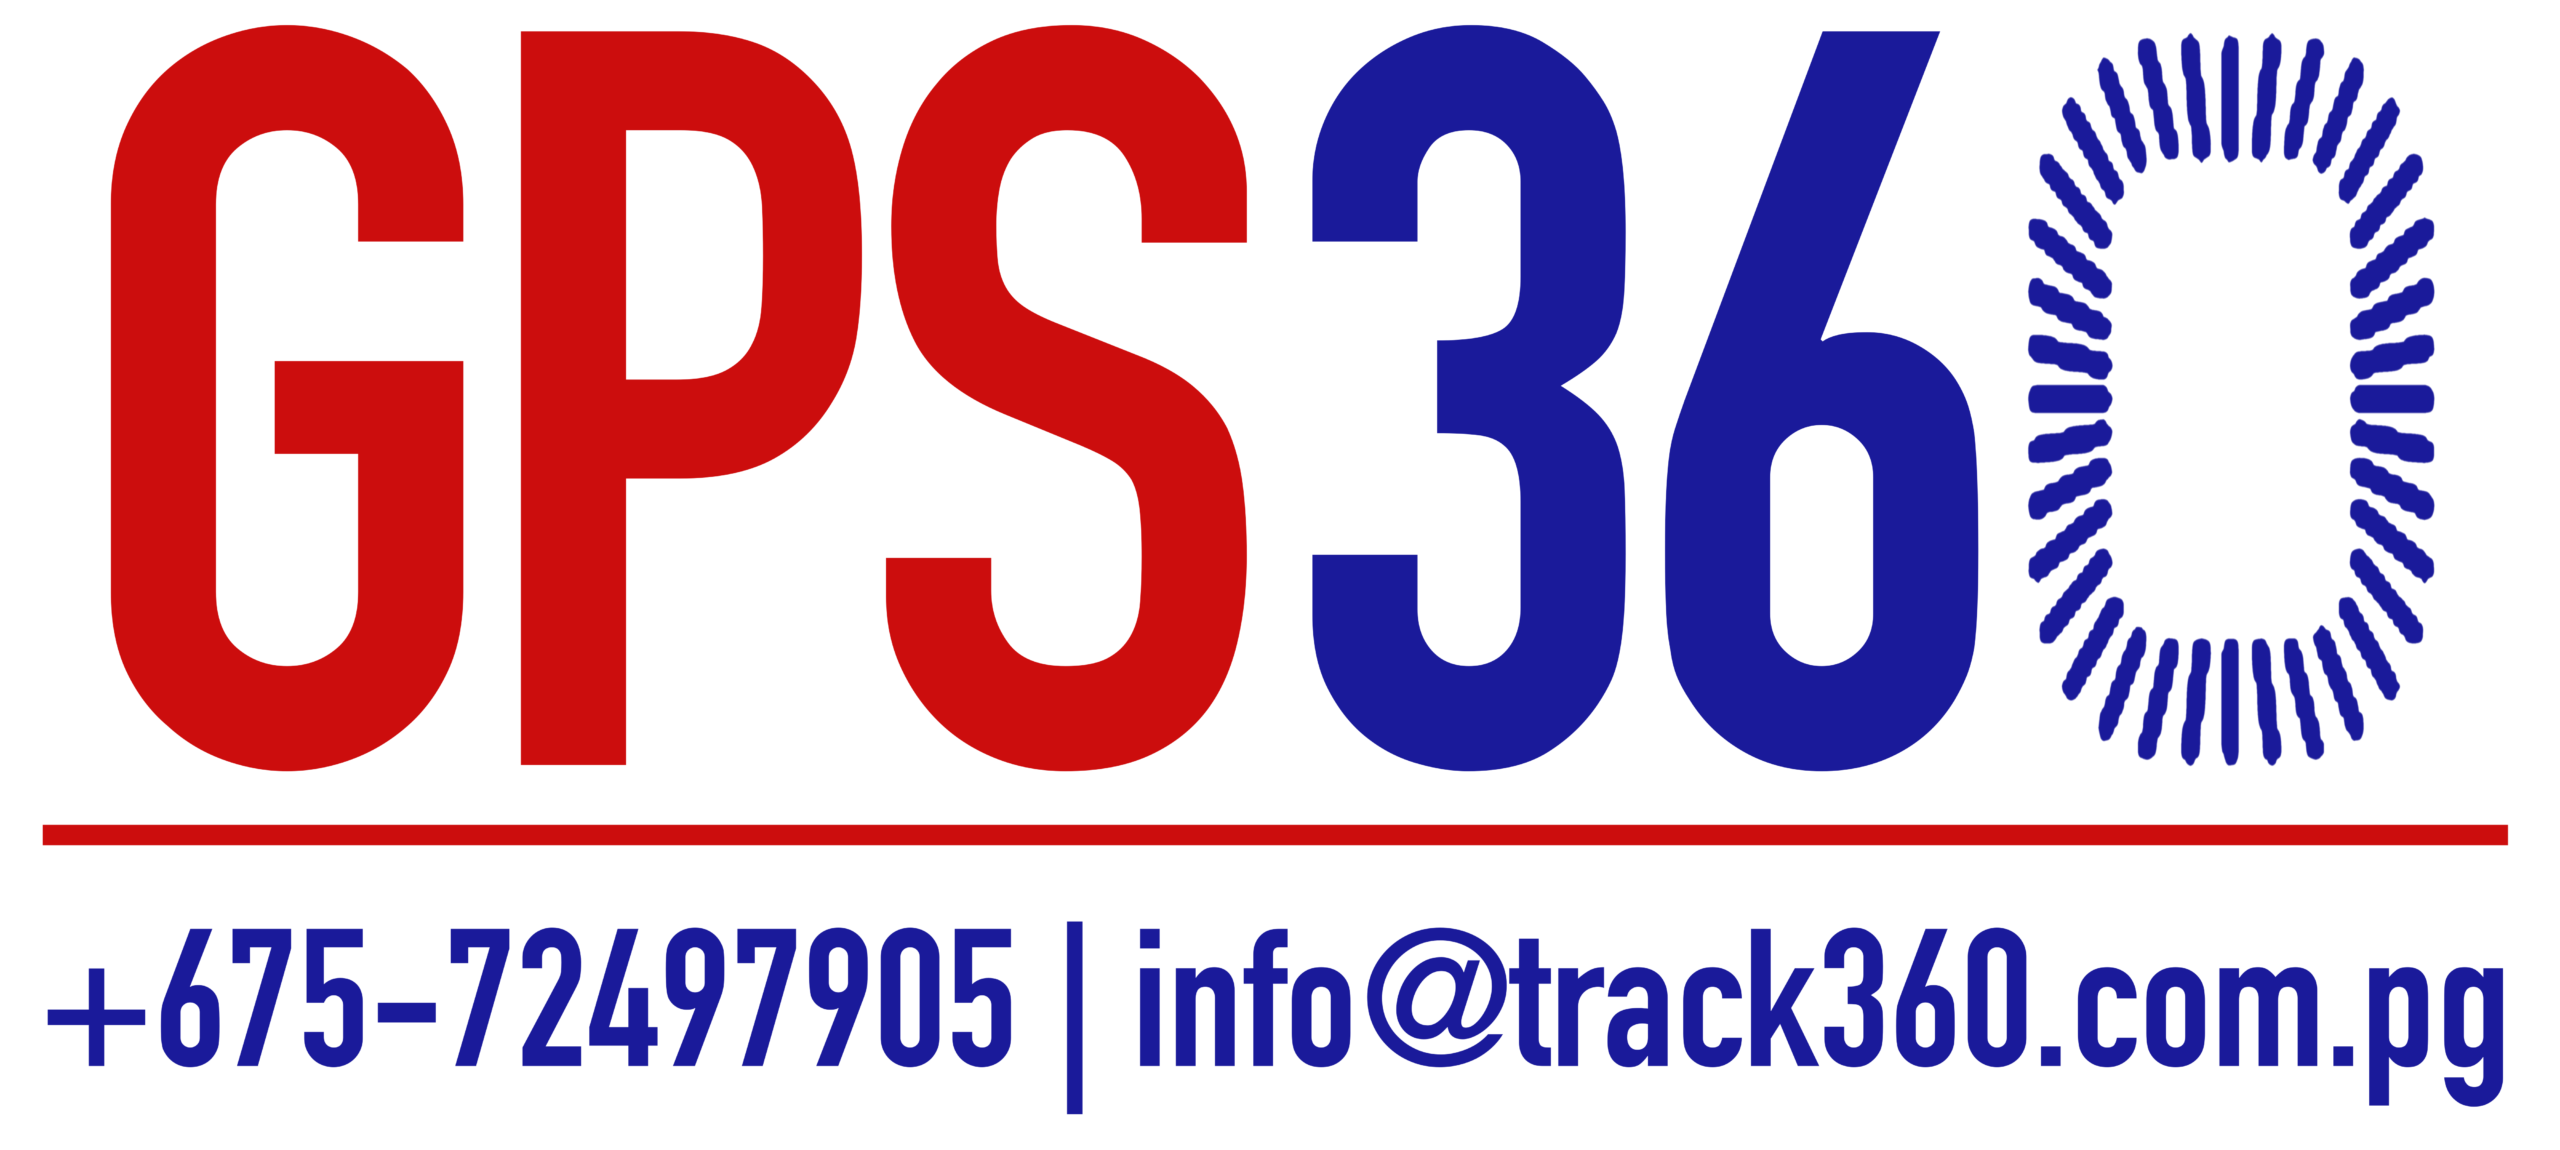 GPS Vehicle Tracking Services in PNG